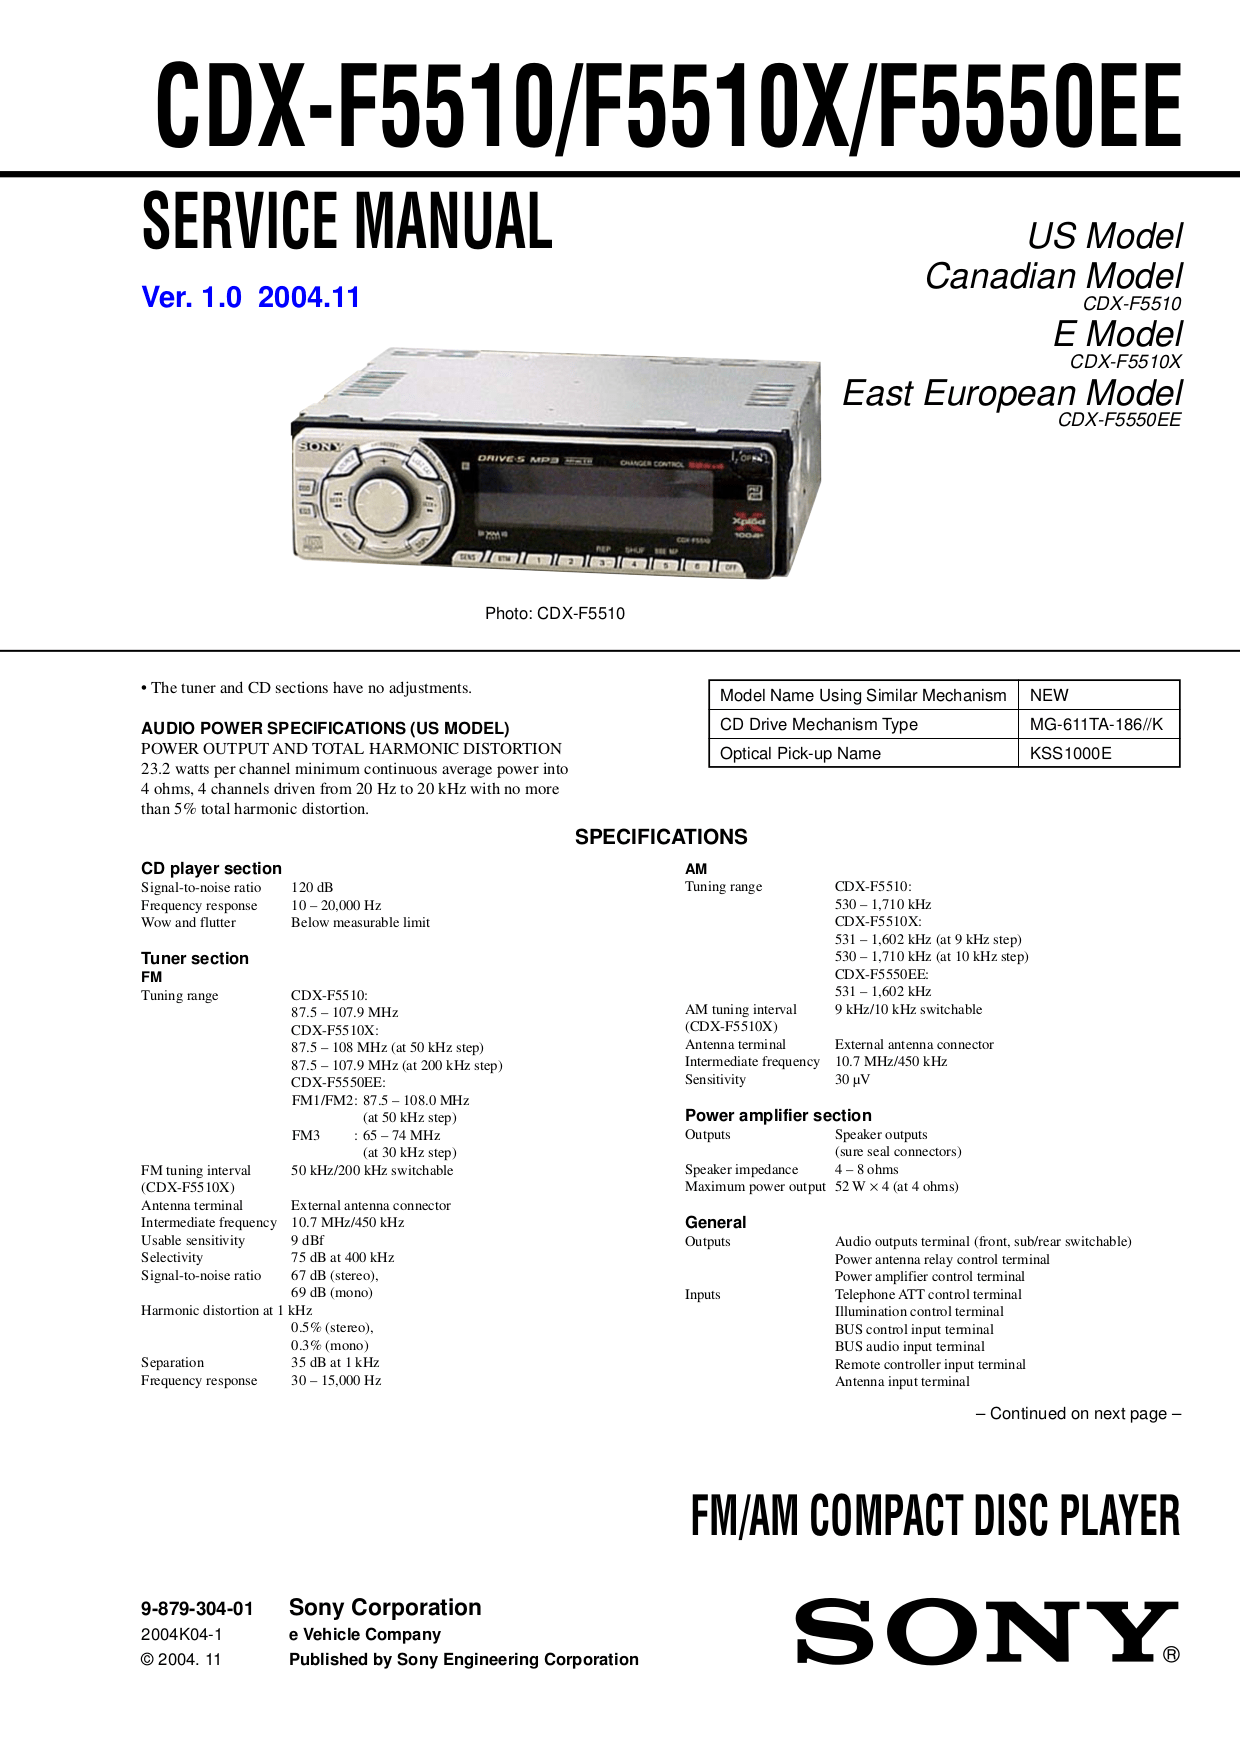 sony cd player wiring diagram mr heater thermostat cdx f5510 29 images